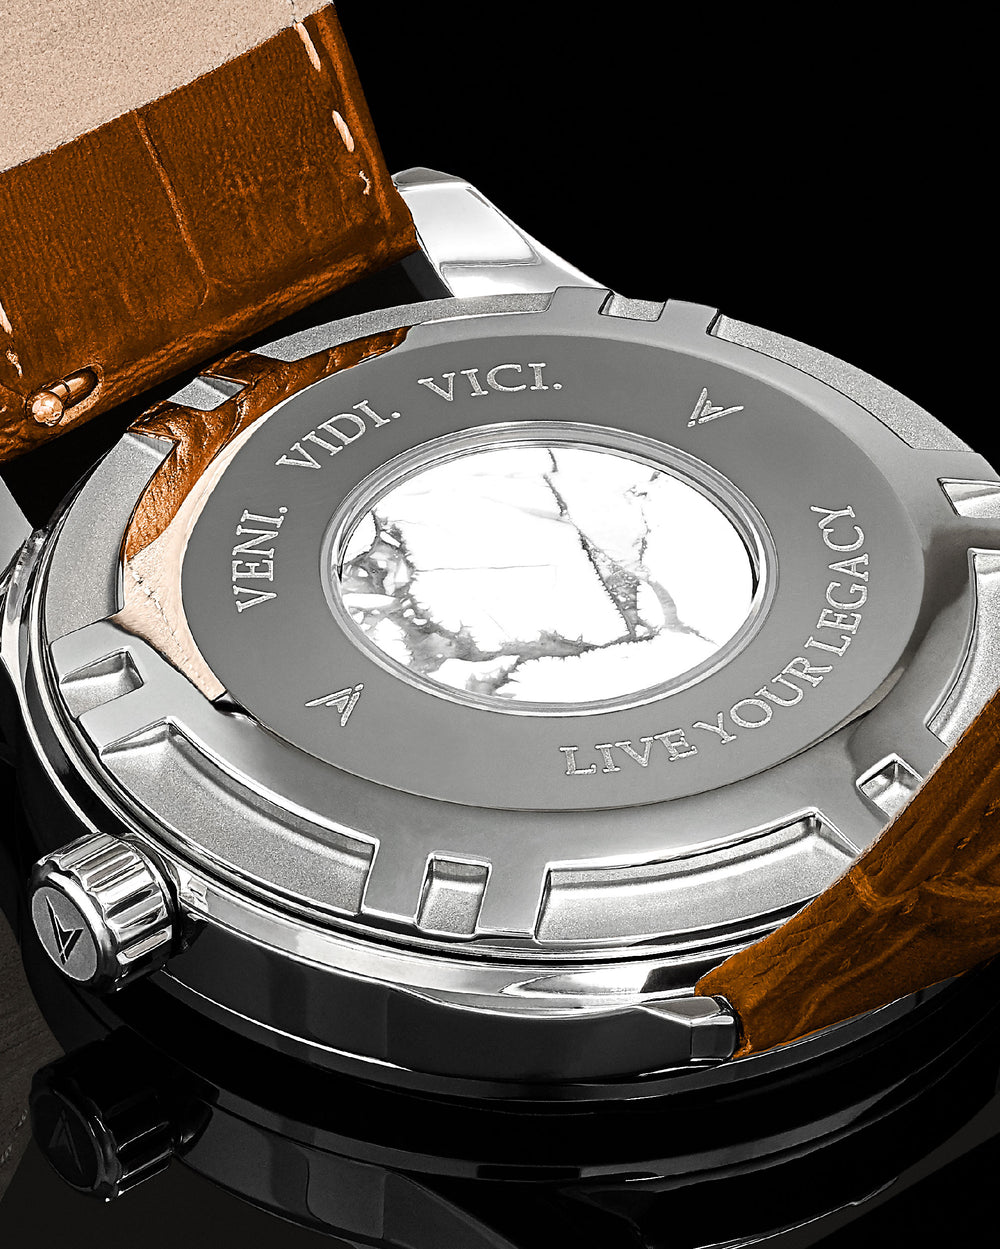 Kairos Italian Marble and 316L Stainless Steel Caseback with Veni Vidi Vici Live Your Legacy Engraving